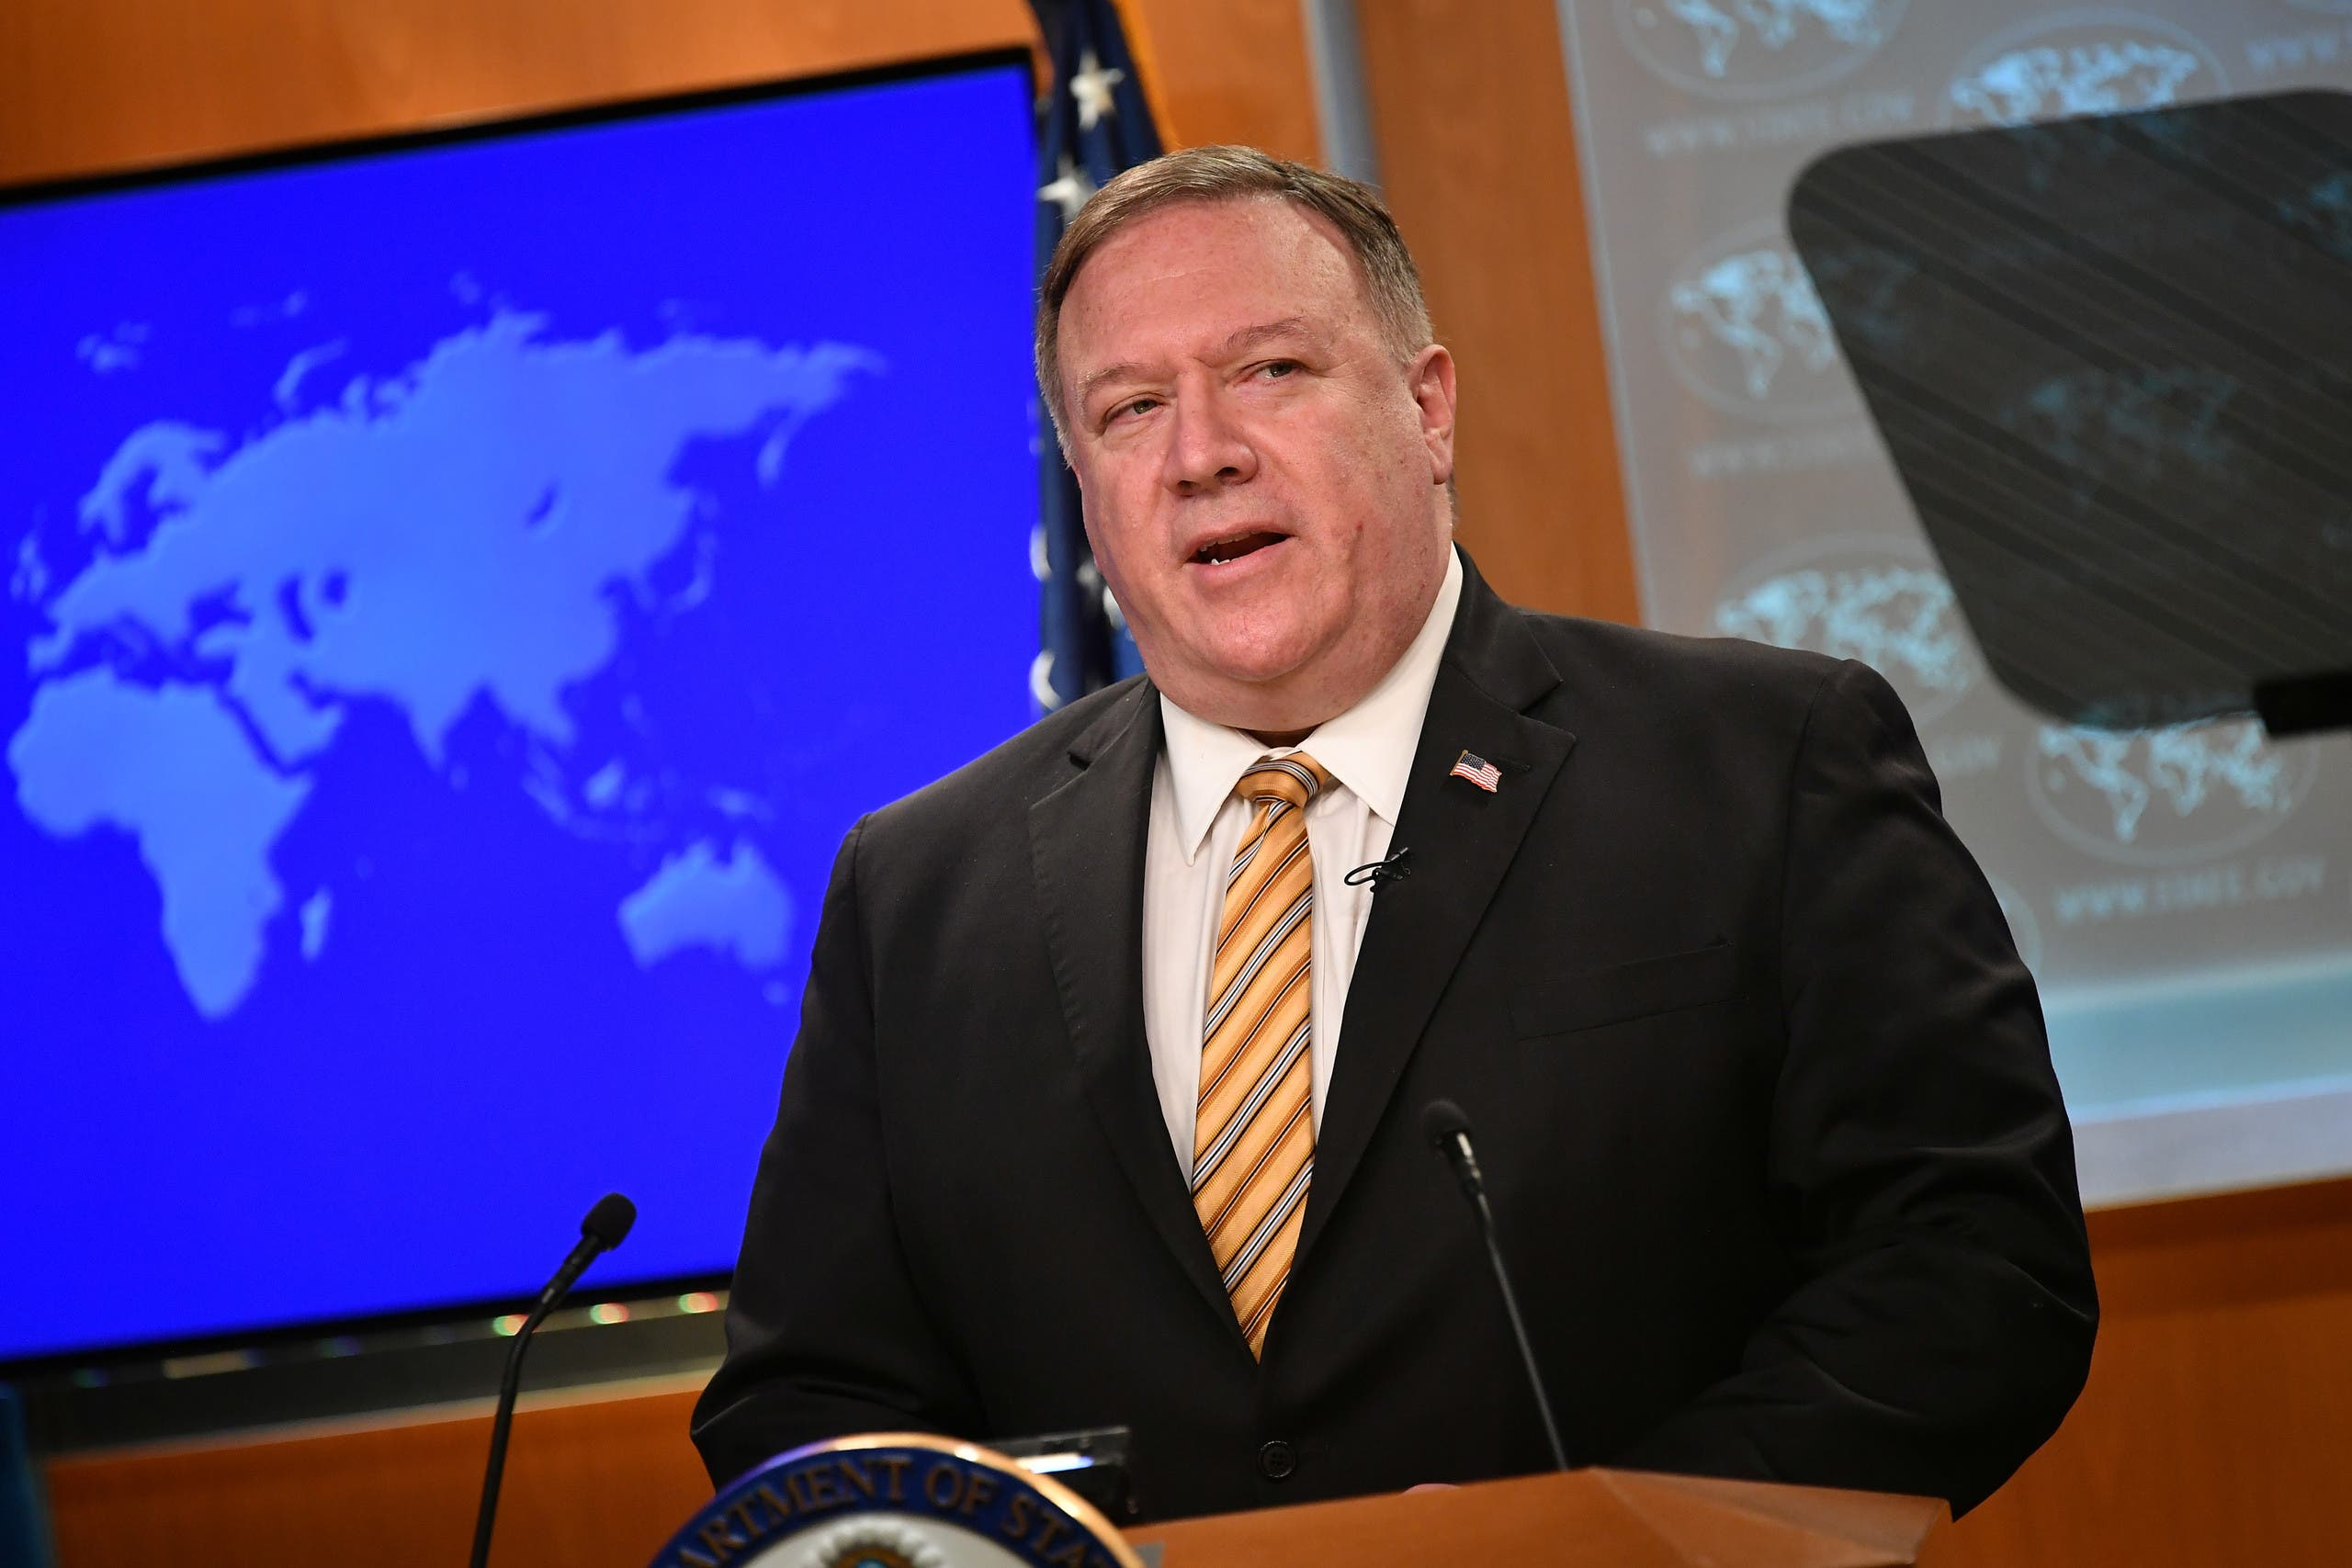 US Secretary of State Mike Pompeo gives a news conference about dealings with China on June 24, 2020. (Reuters)